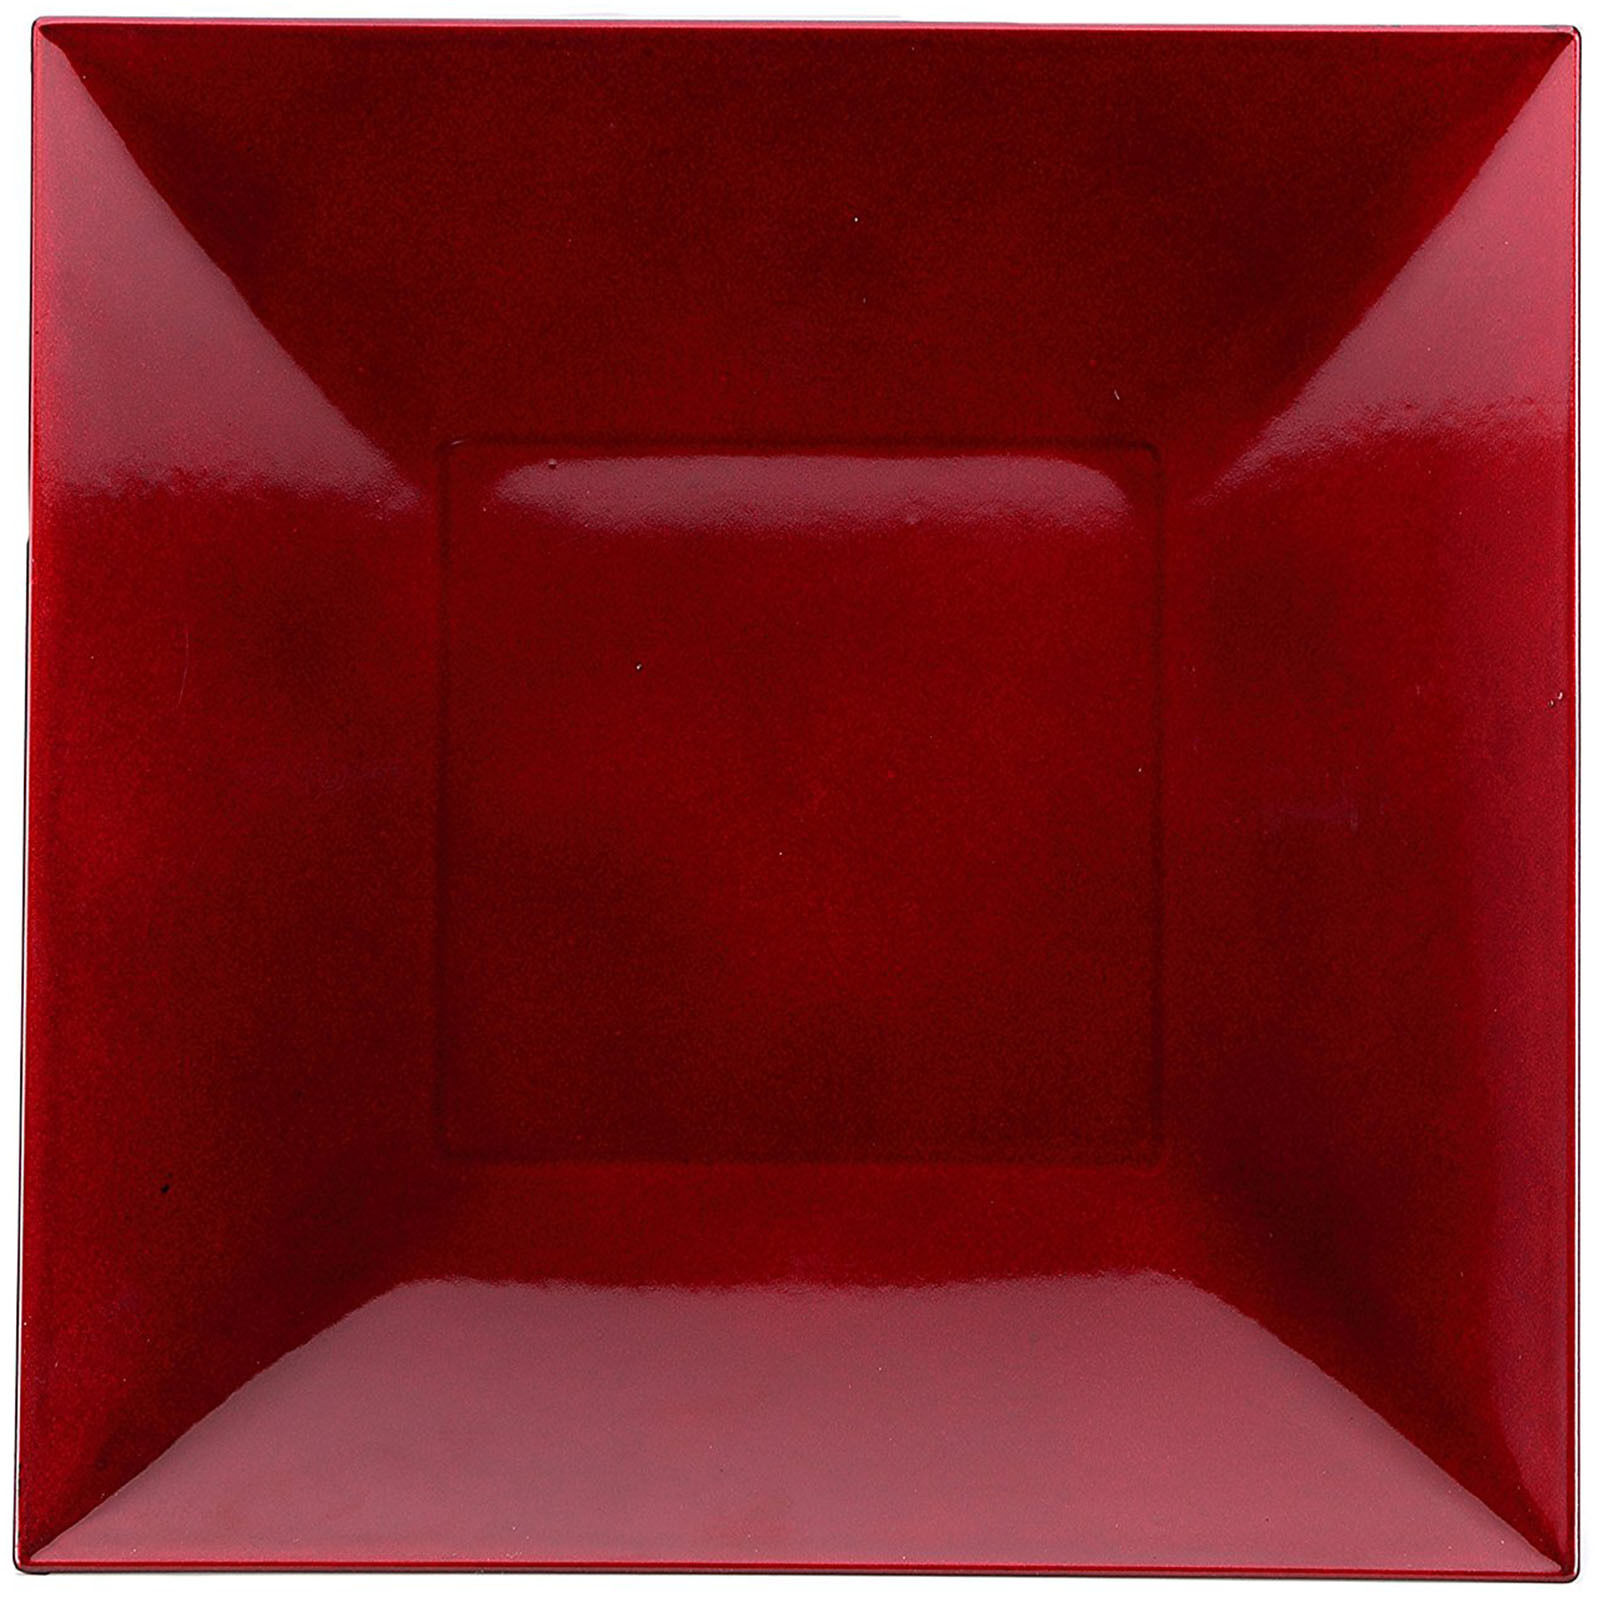 Set Of 6 Red Square Charger Plates Plastic Dinner Table Under Wedding  Placemats